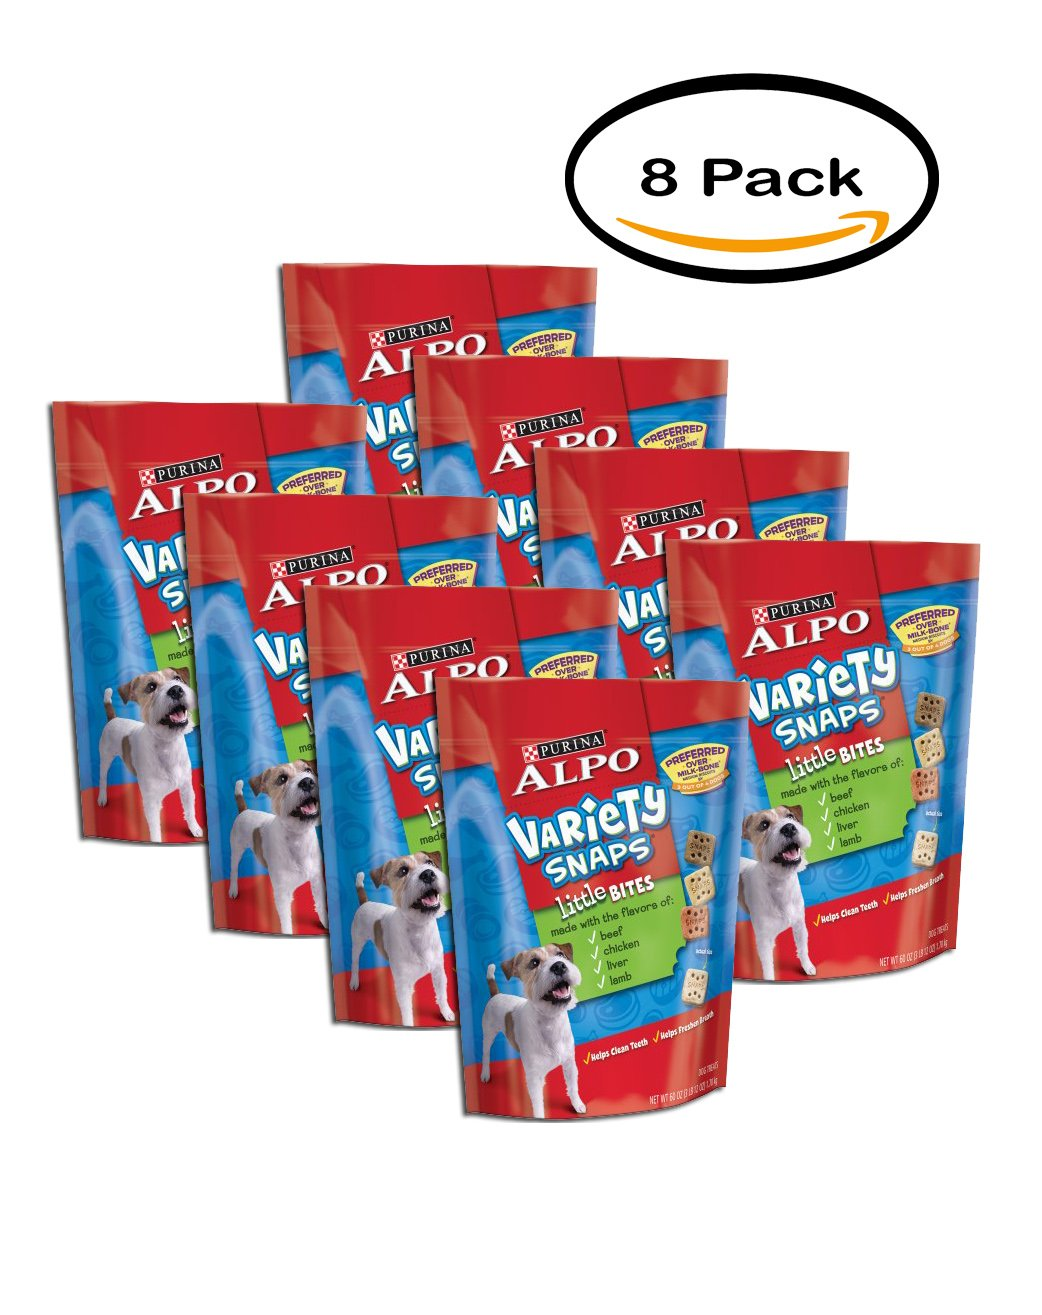 PACK OF 8 - Purina ALPO Variety Snaps Little Bites Dog Treats with Beef, Chicken, Liver & Lamb Flavors 60 oz. Pouch by Purina ALPO Brand Dog Food